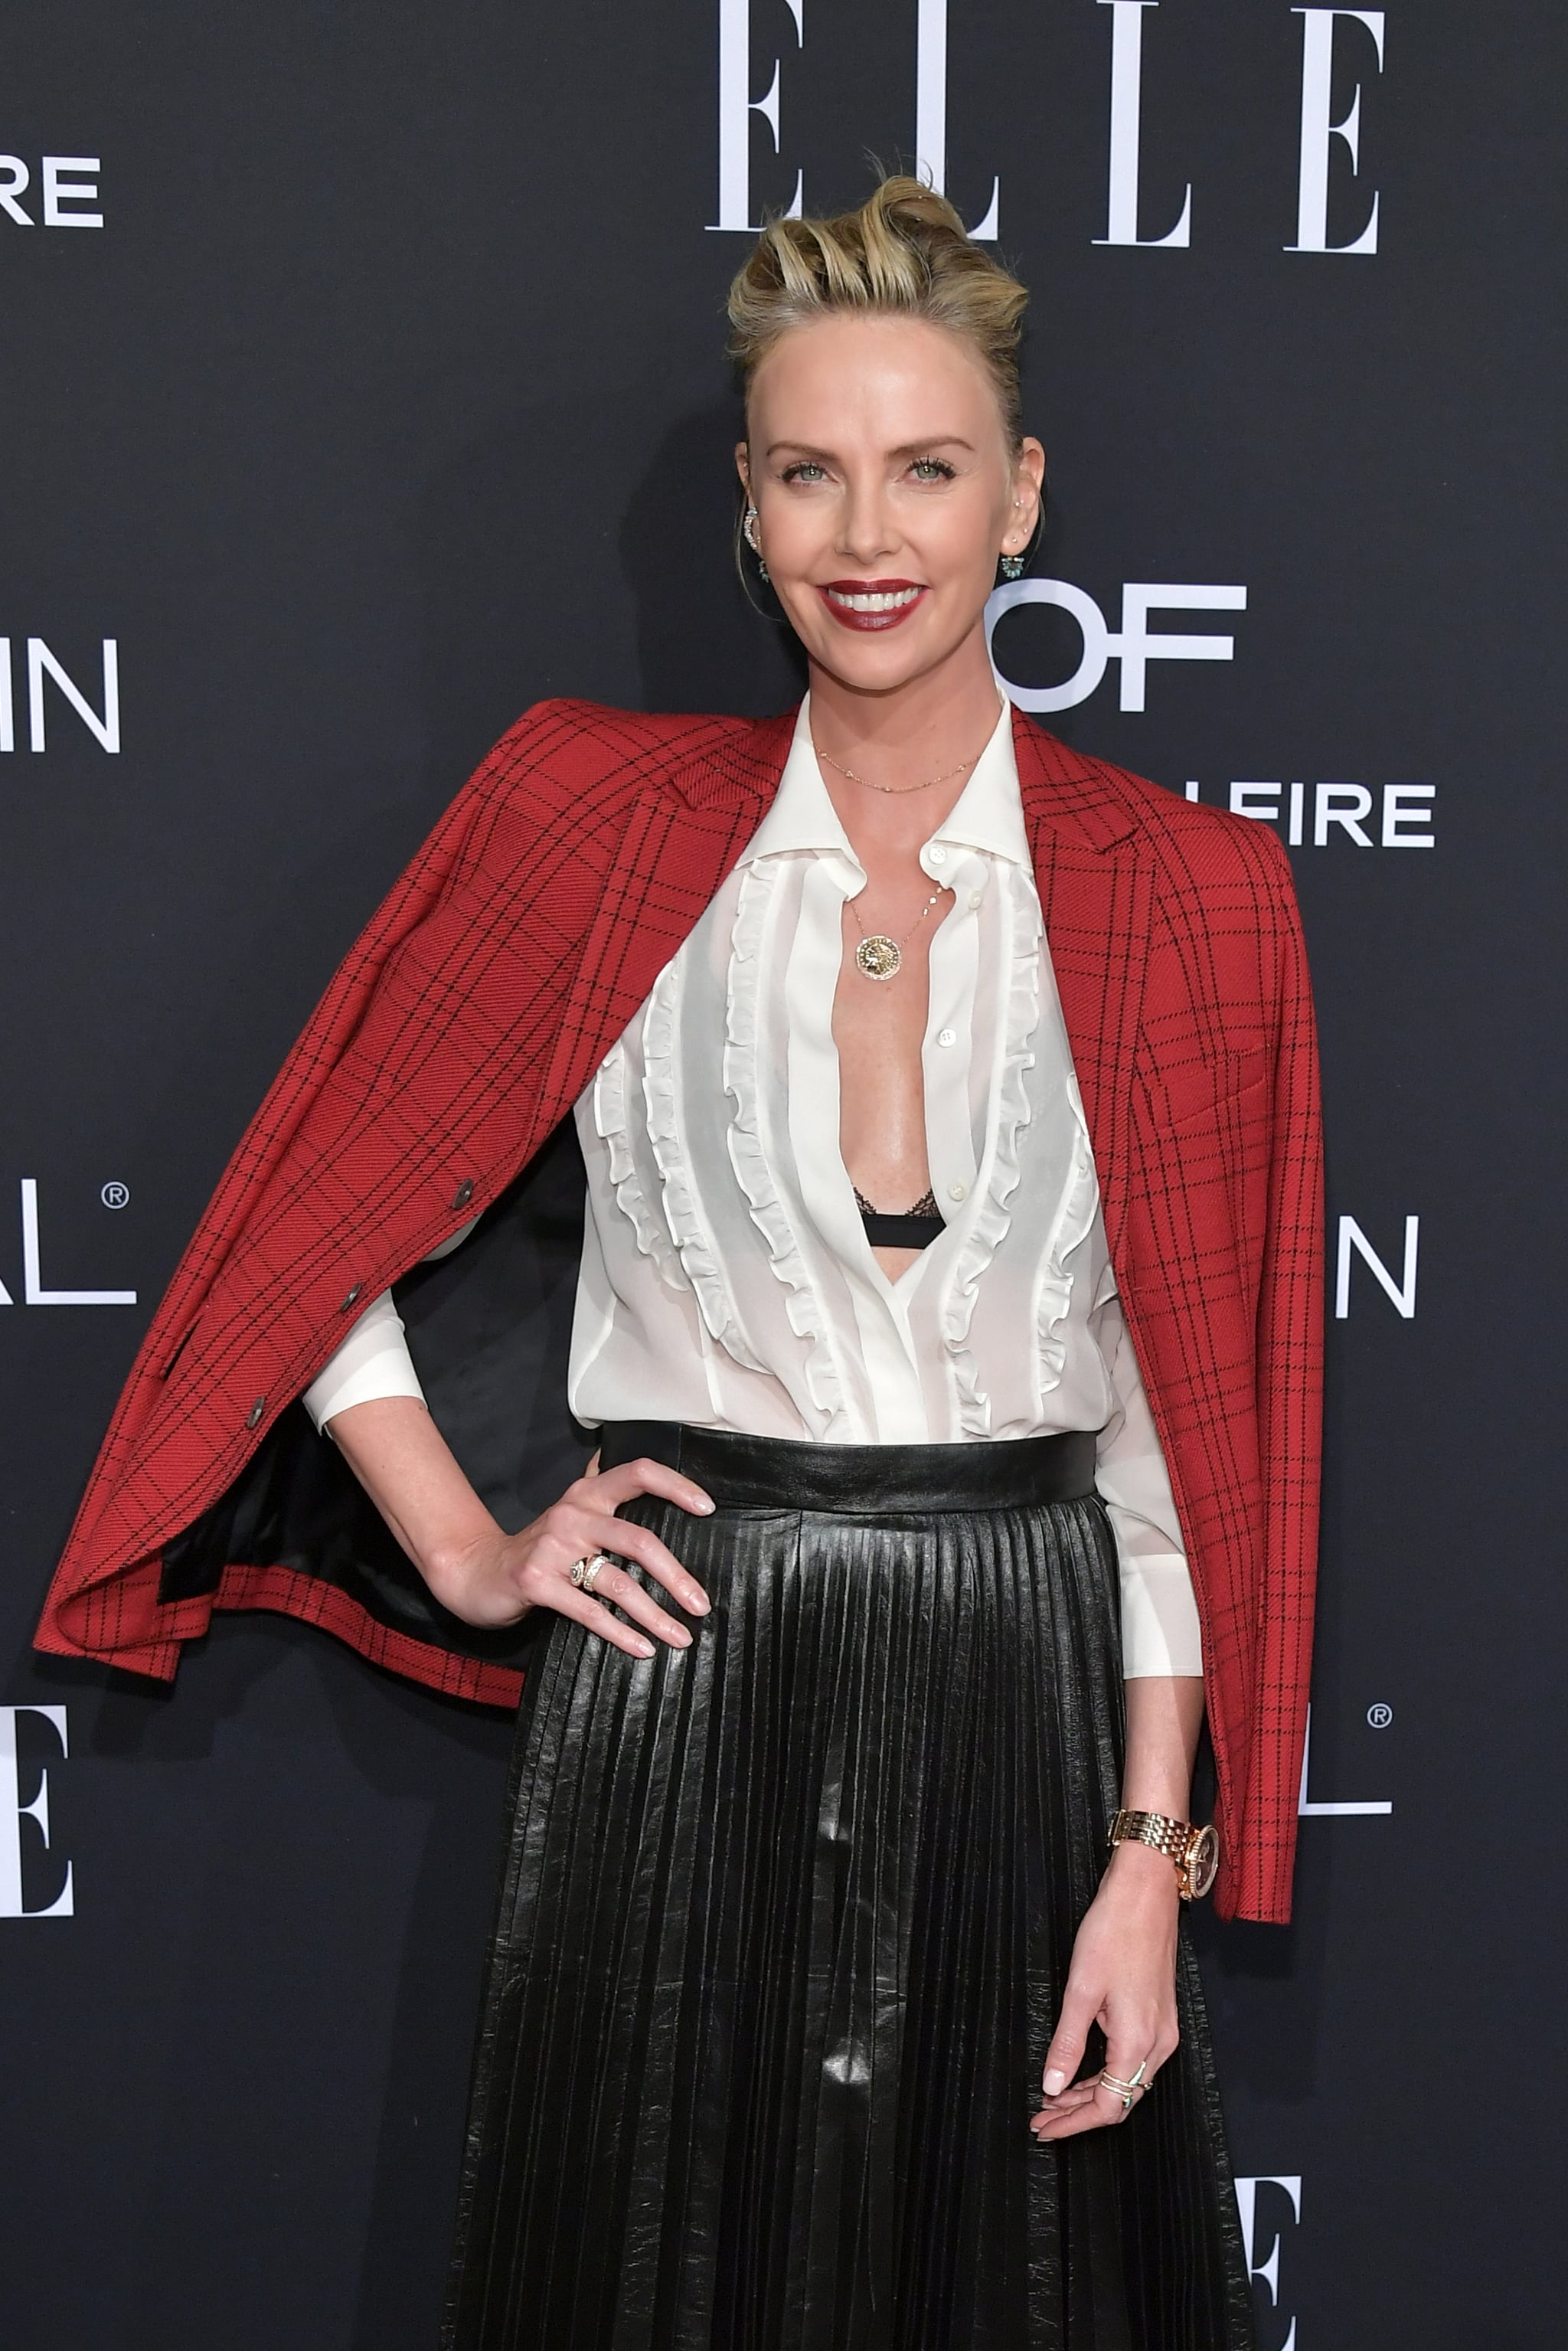 LOS ANGELES, CALIFORNIA - OCTOBER 15: Charlize Theron attends ELLE's 25th Annual Women In Hollywood Celebration presented by L'Oreal Paris, Hearts On Fire and CALVIN KLEIN at Four Seasons Hotel Los Angeles at Beverly Hills  on October 15, 2018 in Los Angeles, California. (Photo by Neilson Barnard/Getty Images for ELLE Magazine)